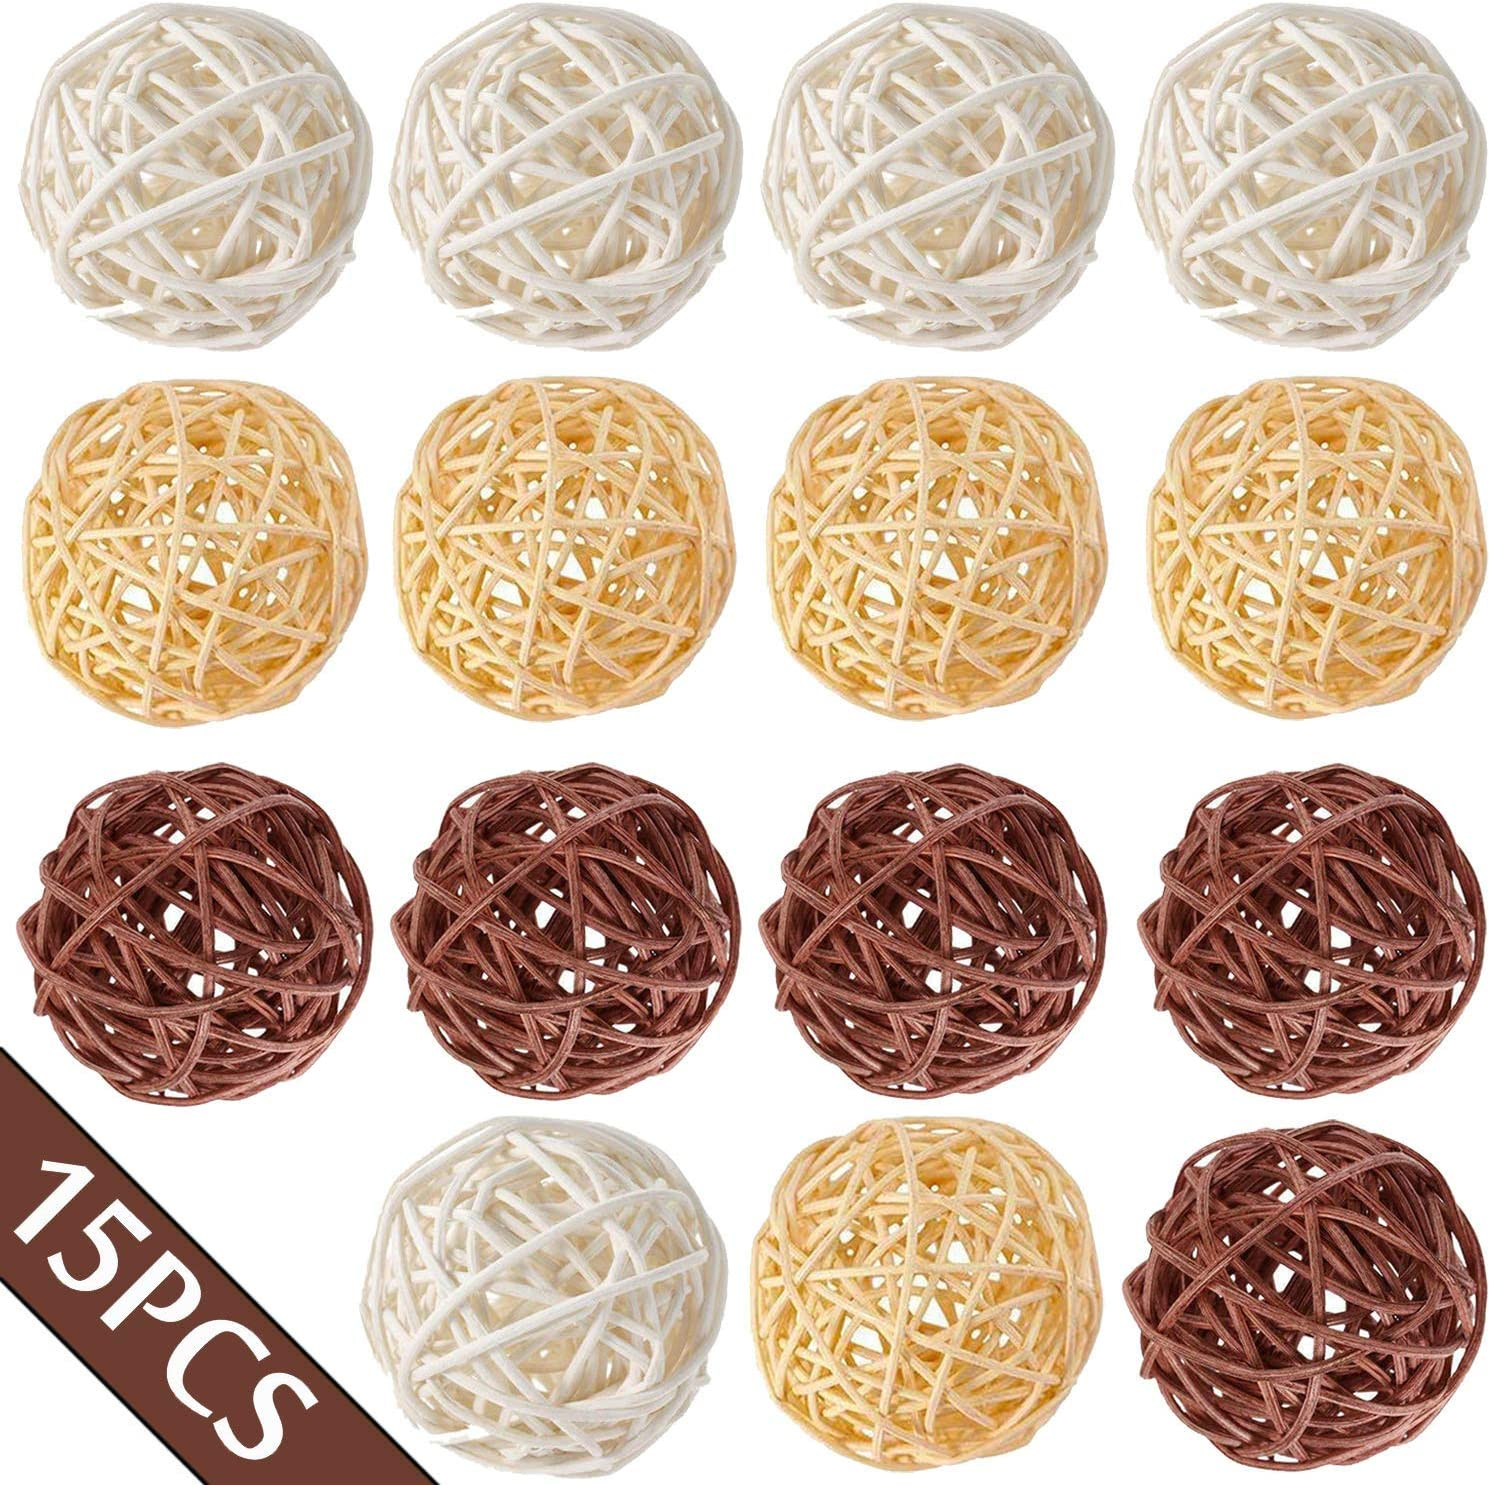 Worldoor 15pcs Wicker Rattan Balls Max 67% OFF Spherical Nat Decorative Orbs Free shipping anywhere in the nation